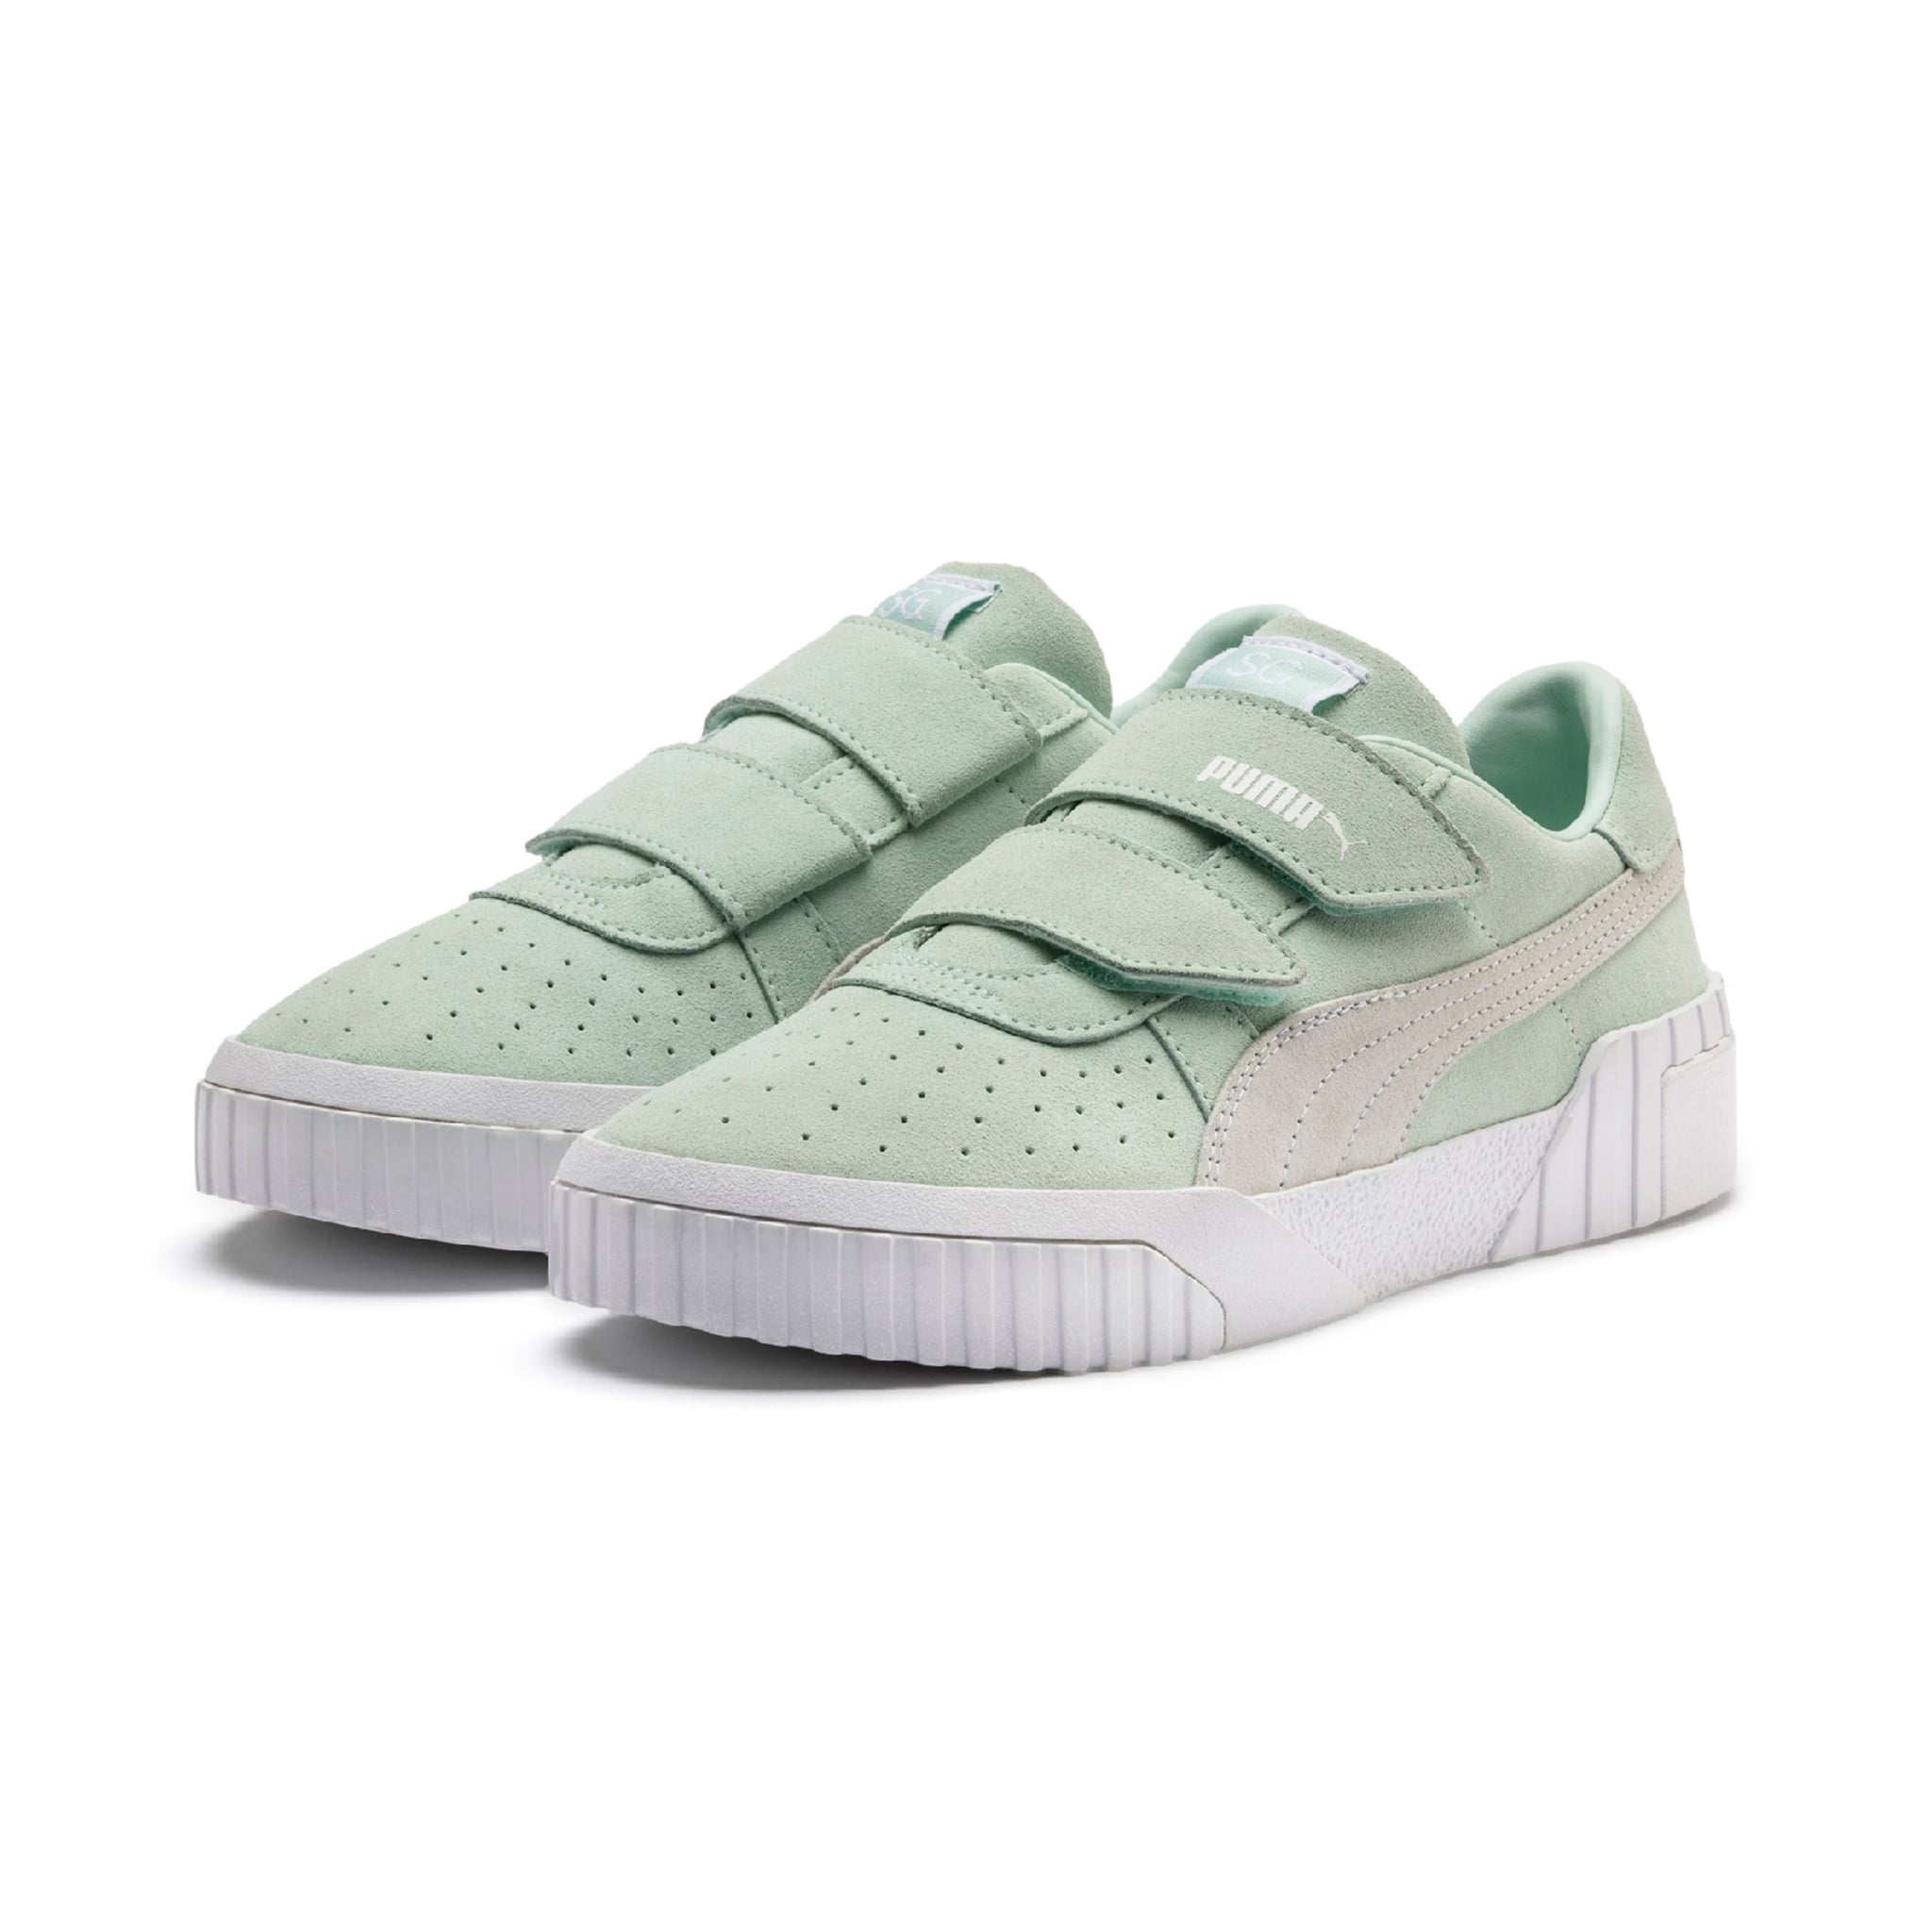 SG x Cali Suede Women's Sneakers   For Her Second Puma